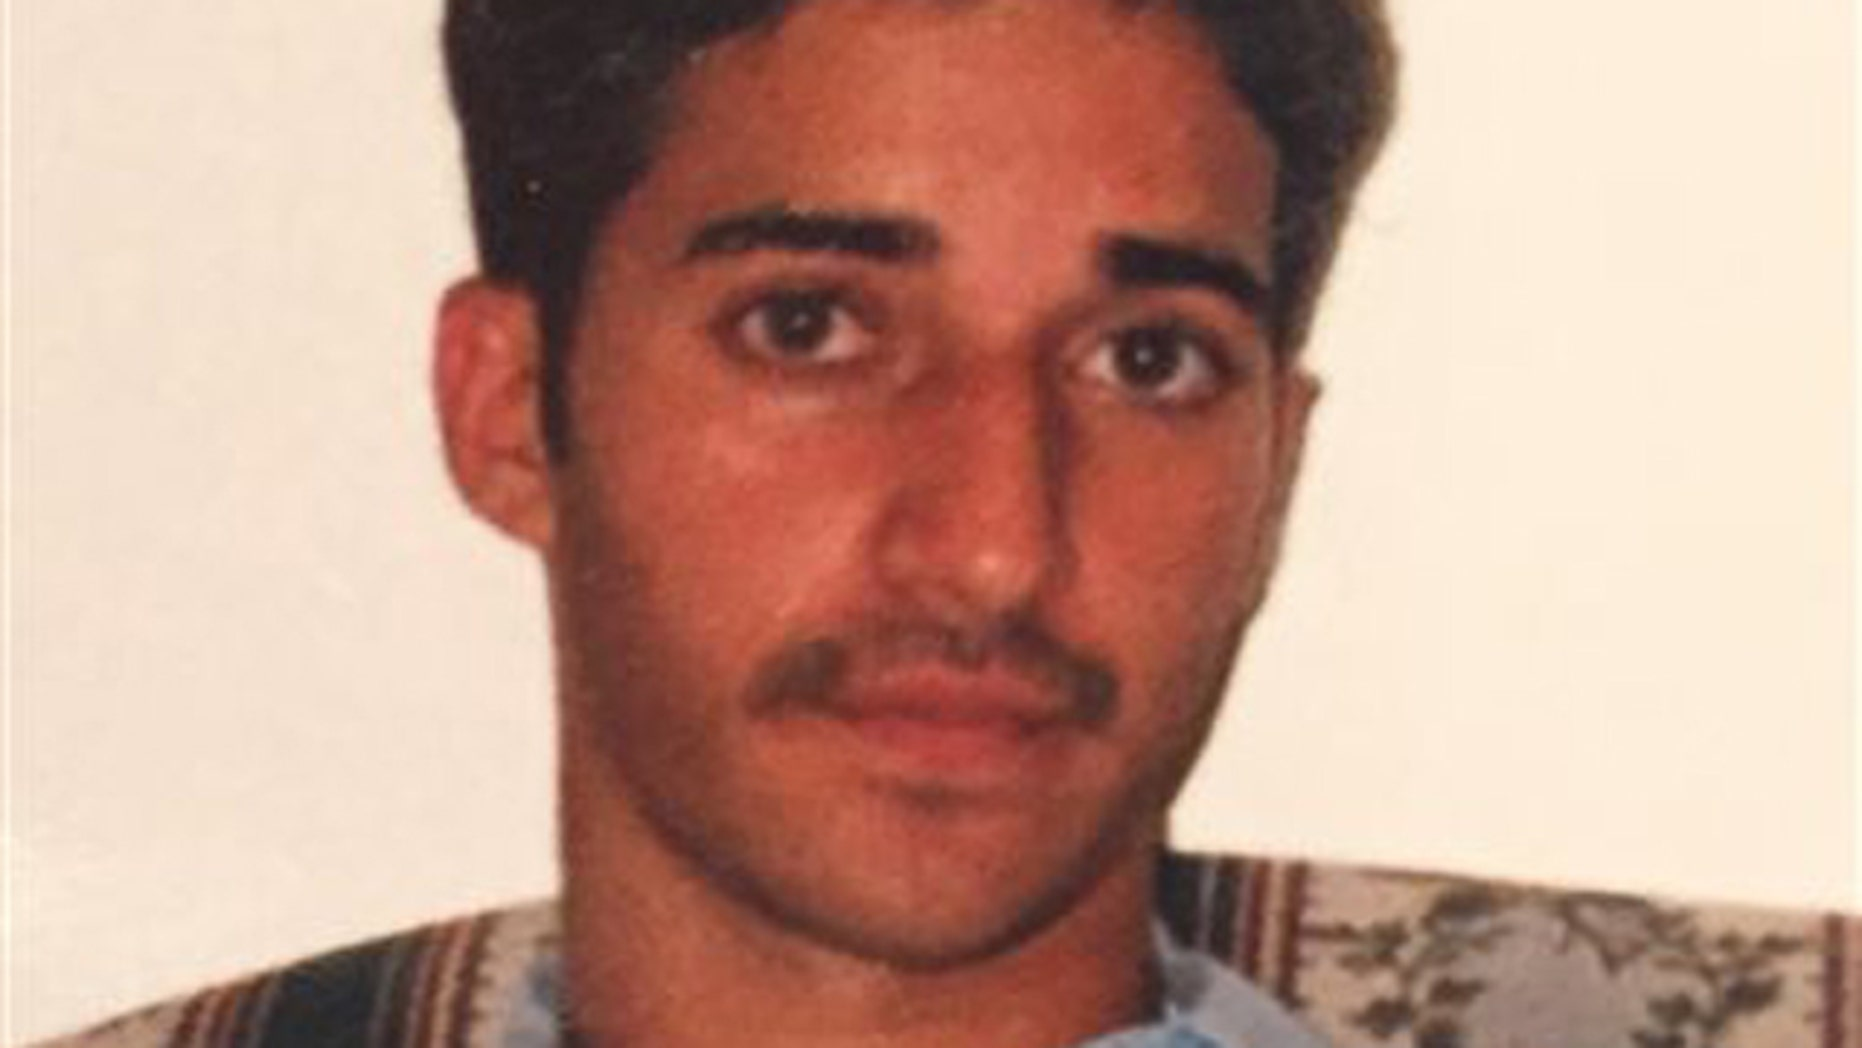 An undated photo provided by Yusuf Syed shows his brother, Adnan Syed. Adnan Syed, now 34, was sentenced to life in prison after he was convicted in 2000 of killing his Woodlawn High School classmate and former girlfriend Hae Min Lee.